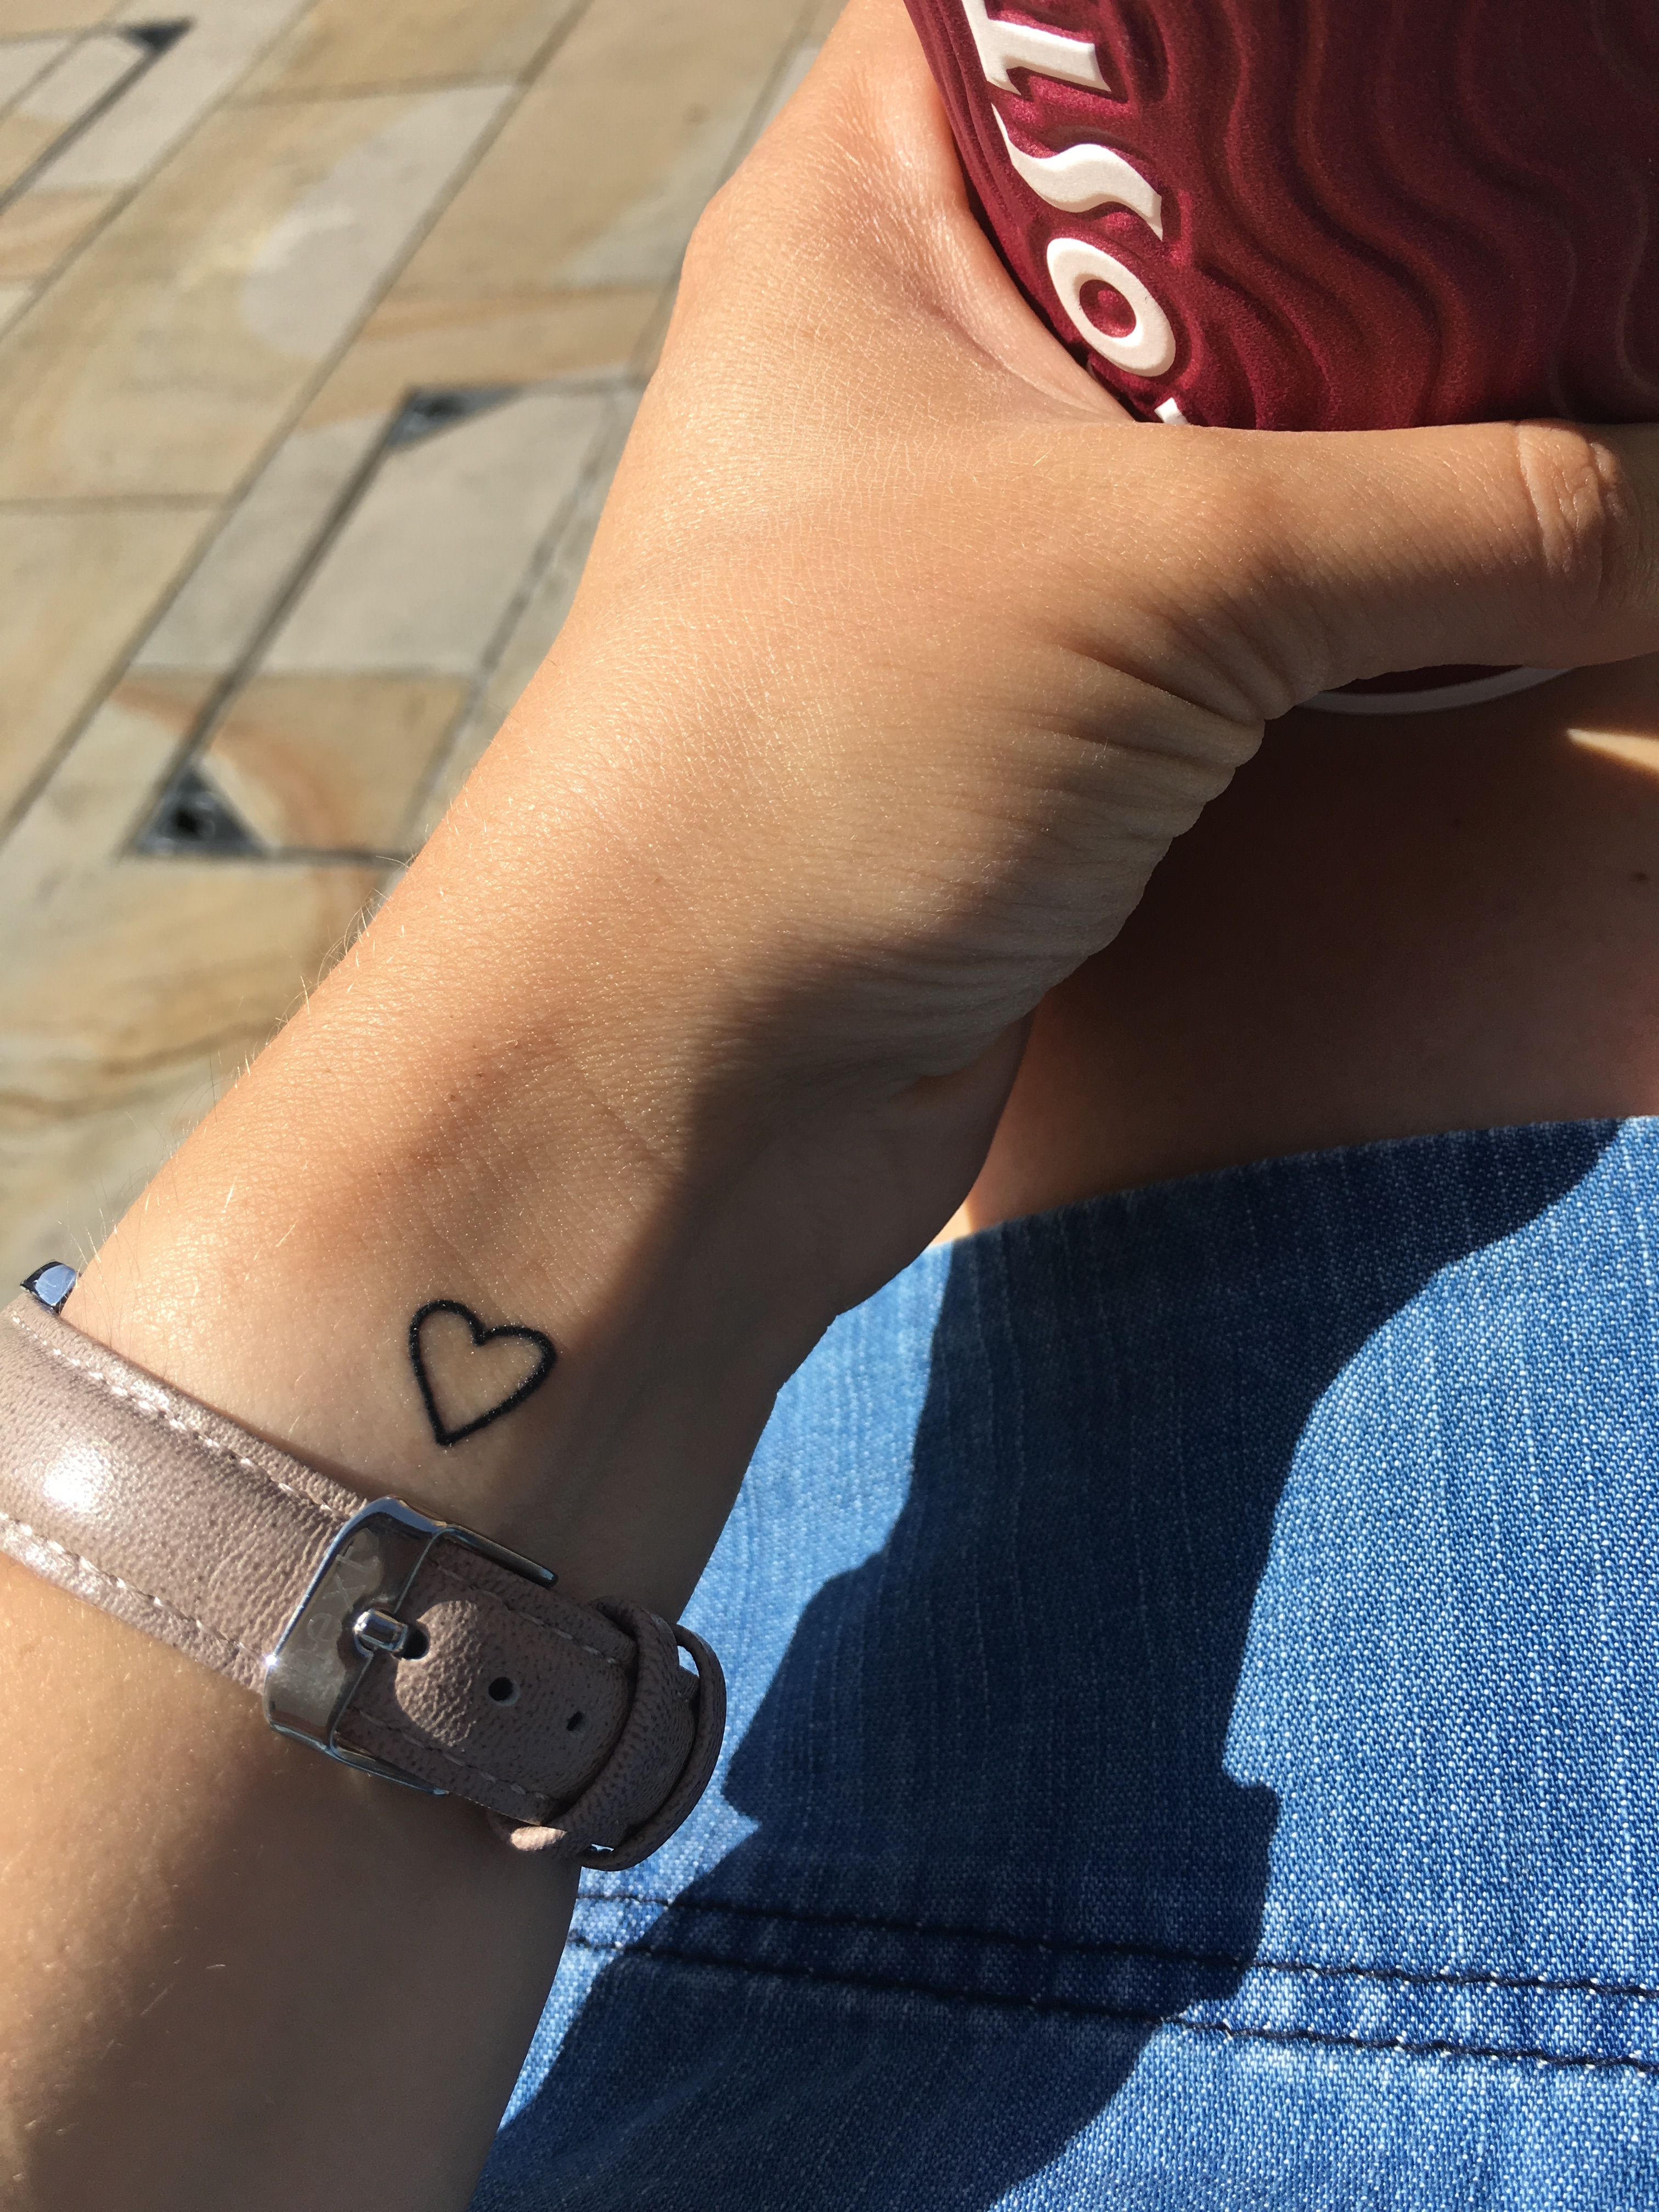 Heart Tattoo On Wrist Heart Tattoo Wrist Small Heart Wrist Tattoo Small Hand Tattoos